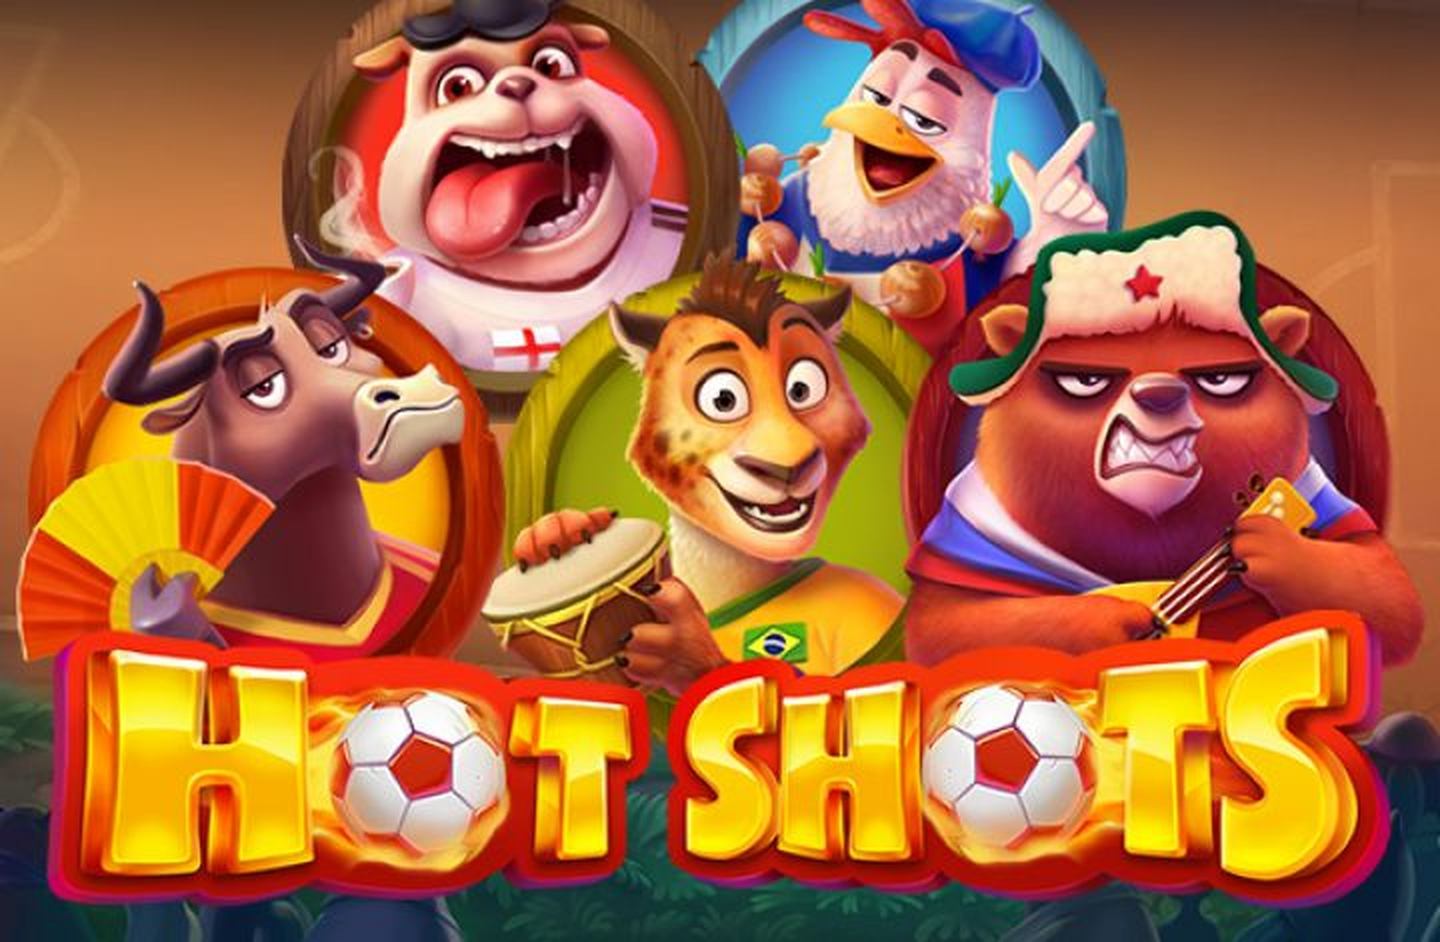 The Hot Shots Online Slot Demo Game by iSoftBet